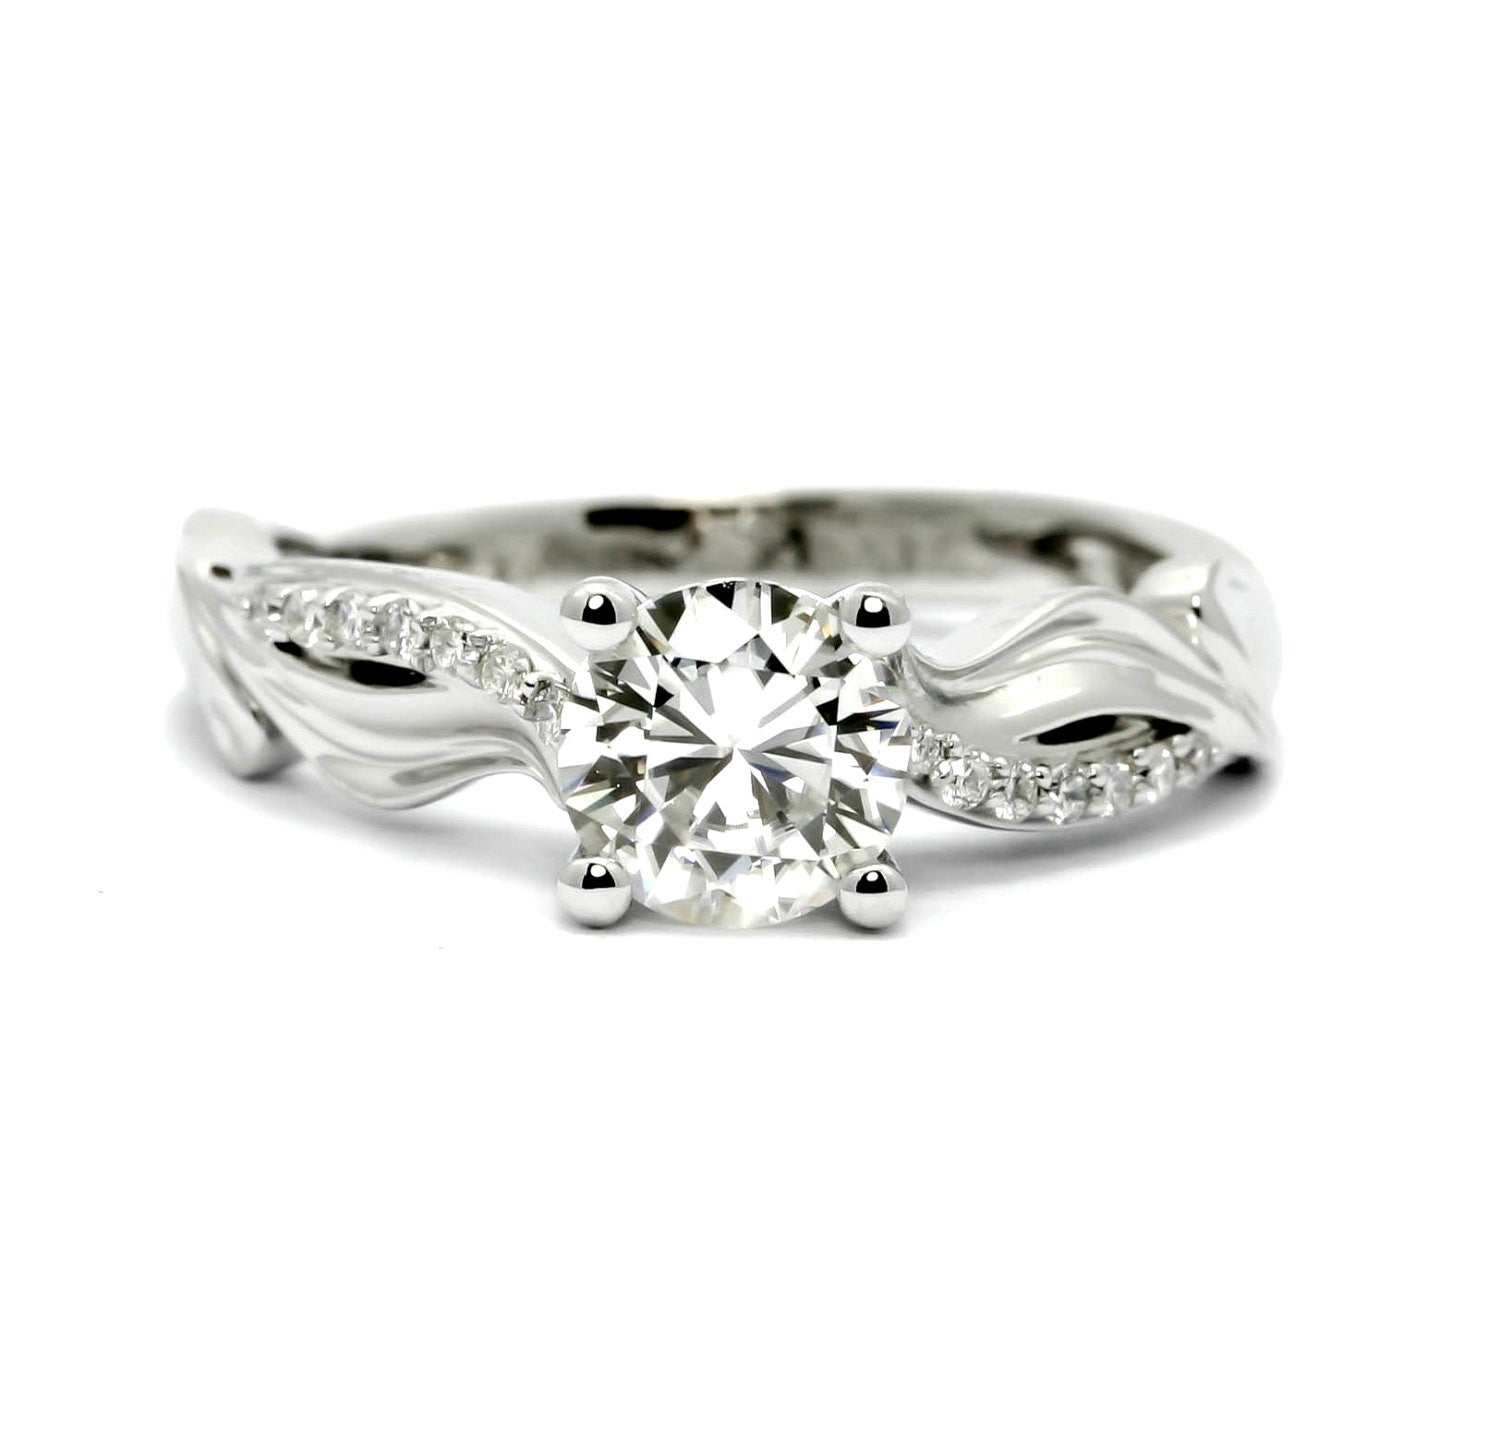 Unique Diamond Engagement Ring With 1.0 Carat Diamond Center Stone, Anniversary Ring - WDY11666SE